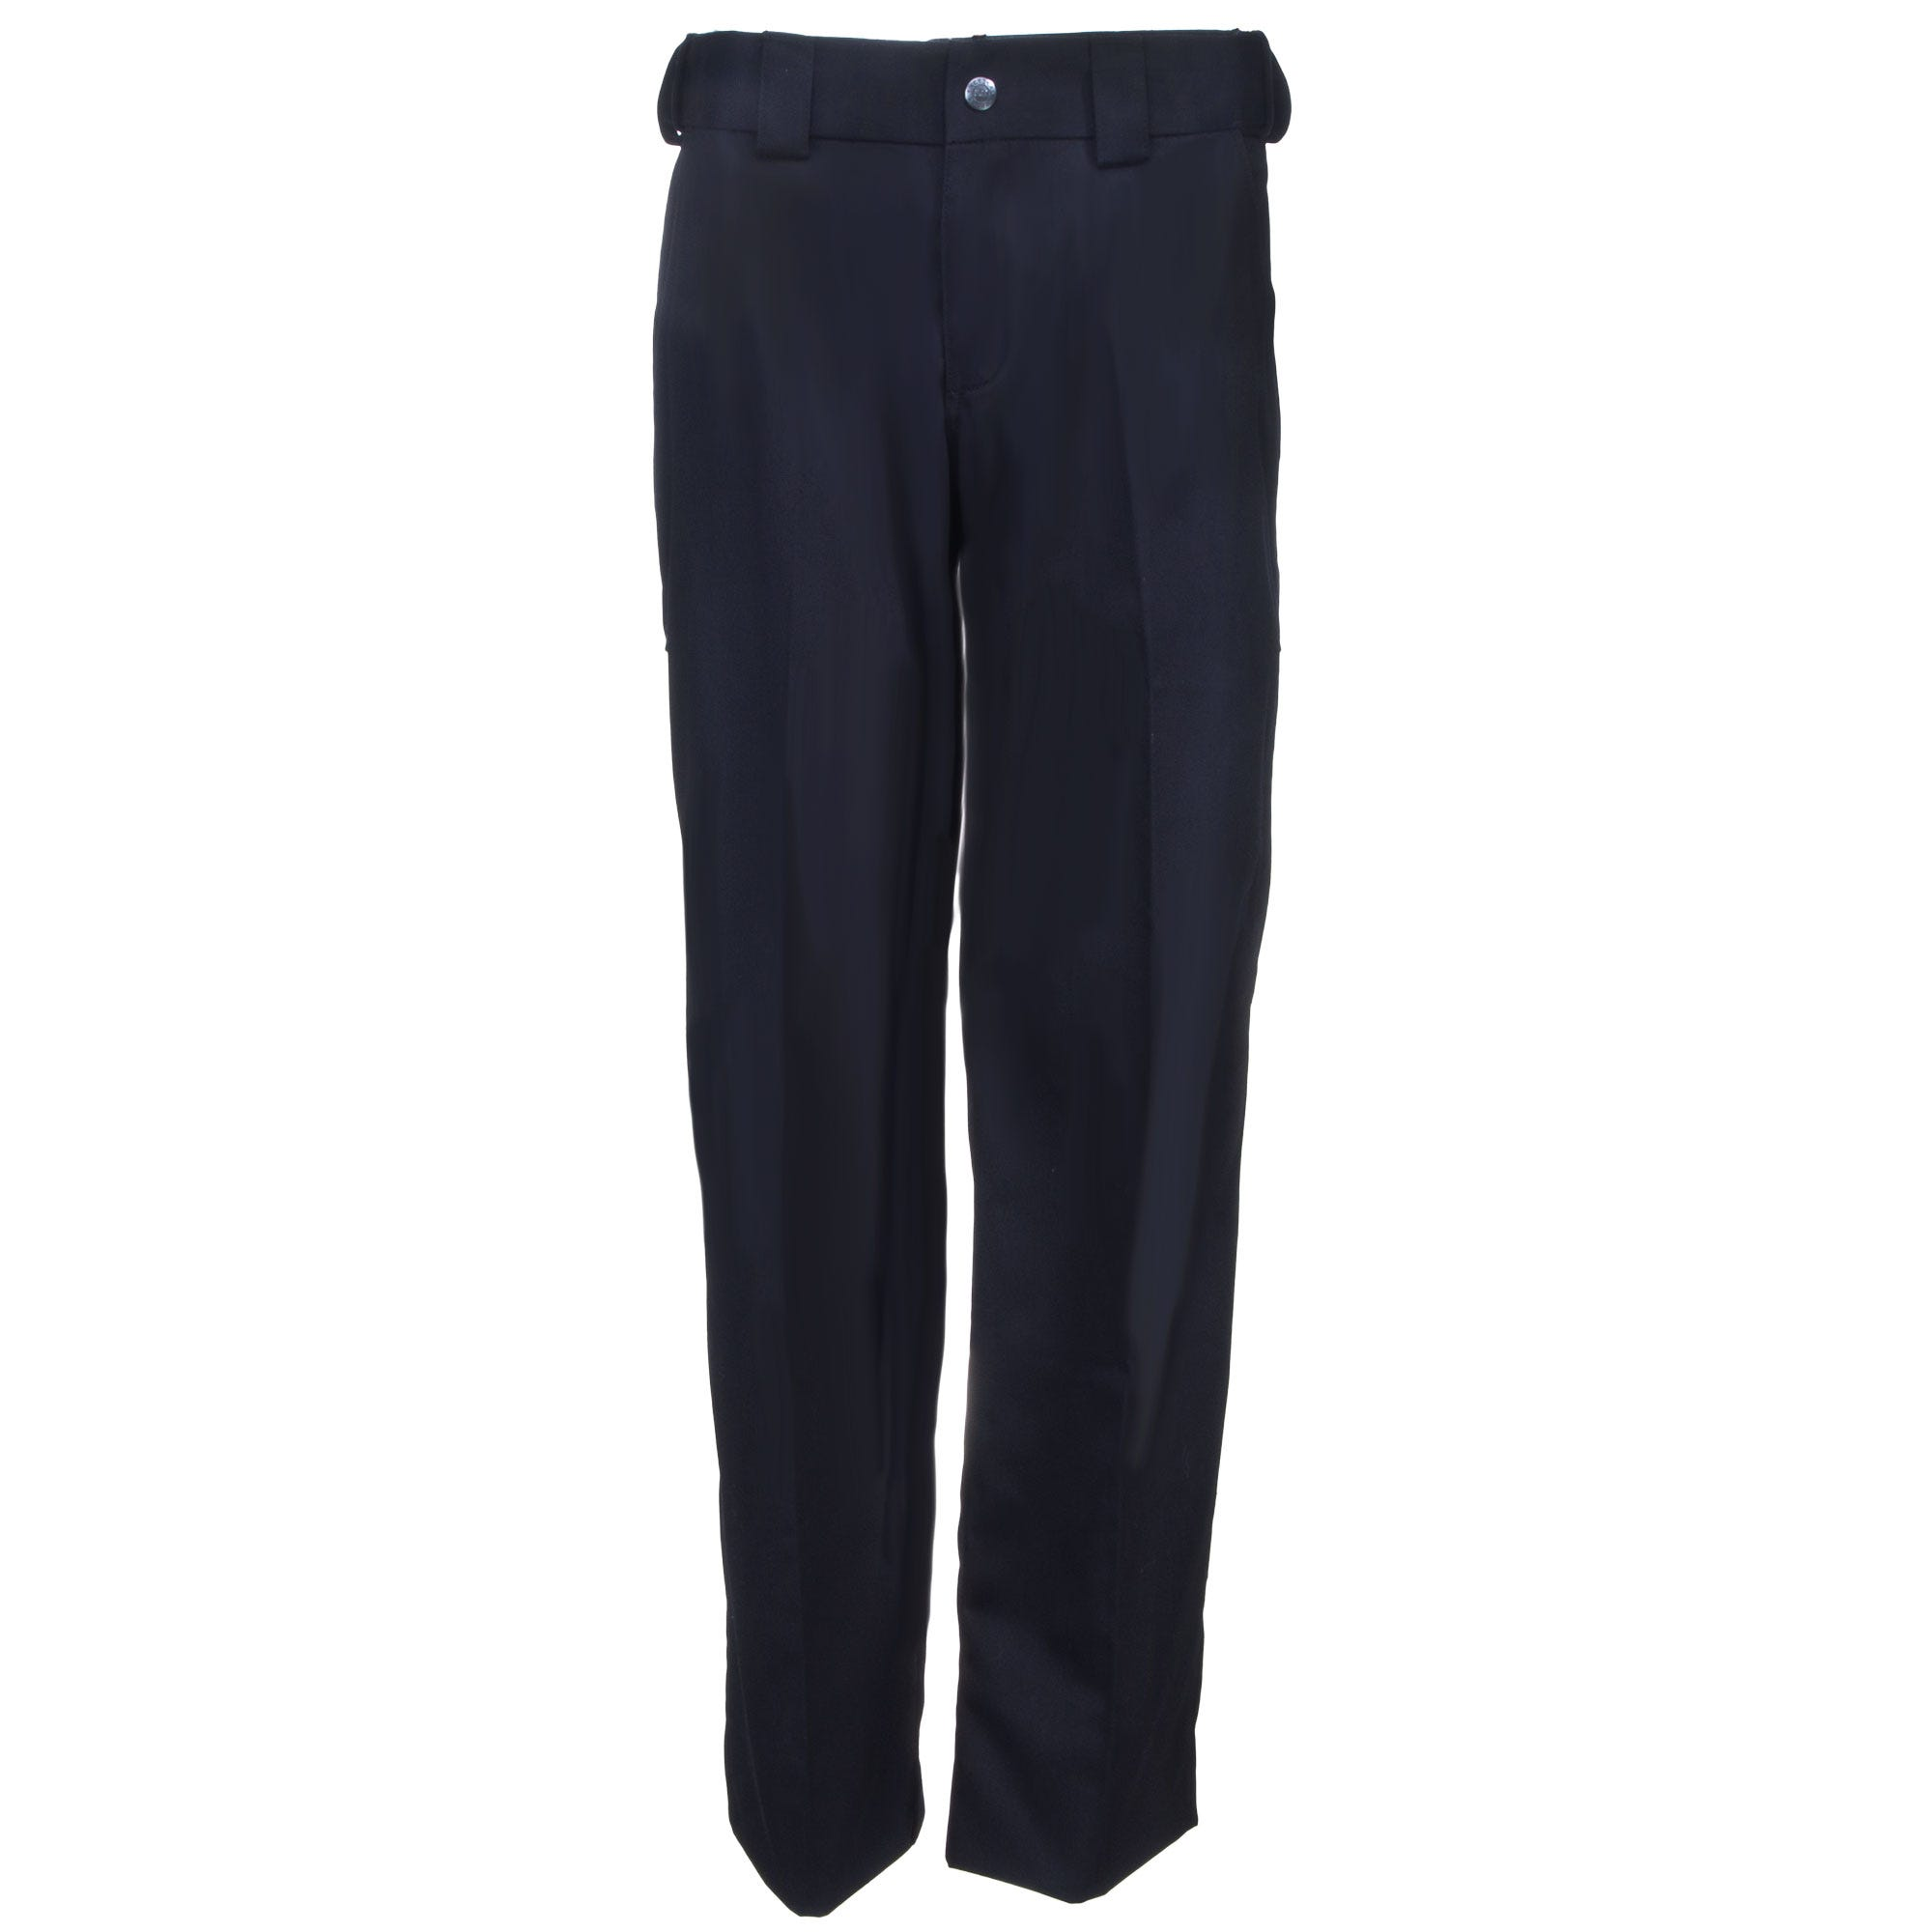 5.11 Tactical Women's 64304 750 Stain-Resistant Navy Twill Pants